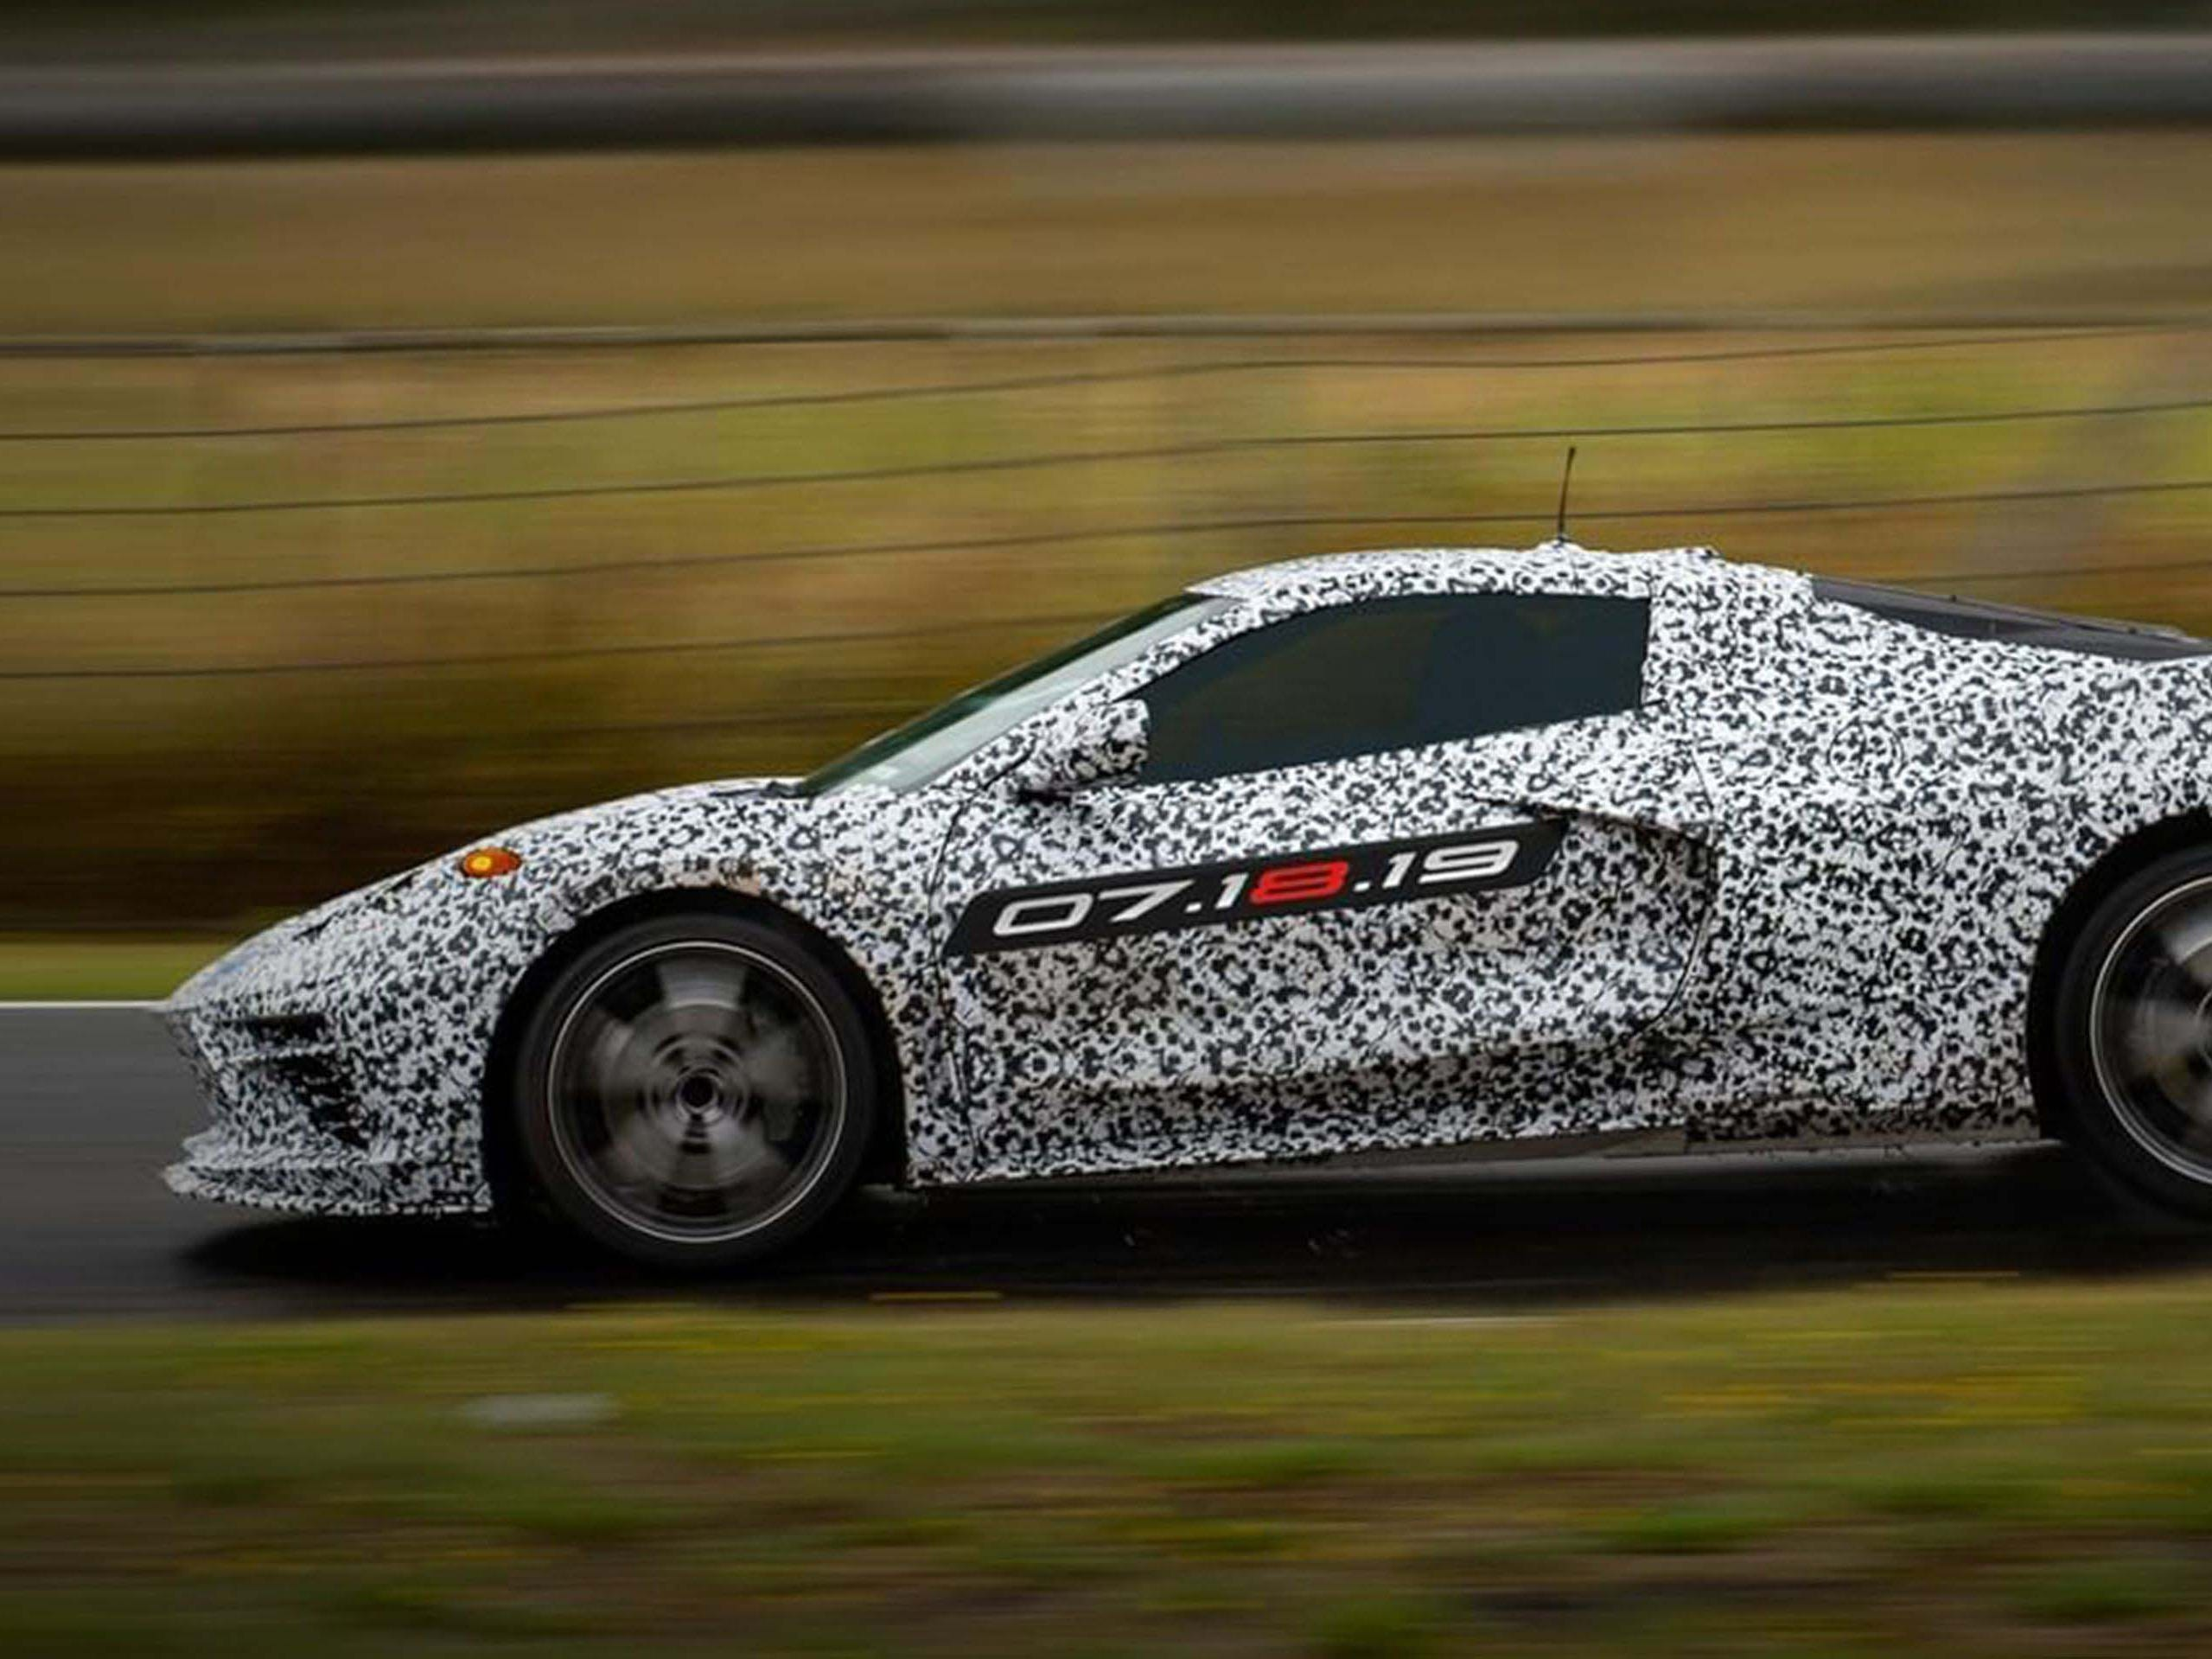 The long-awaited Chevrolet C8 is the first production 'Vette with the engine behind the driver.